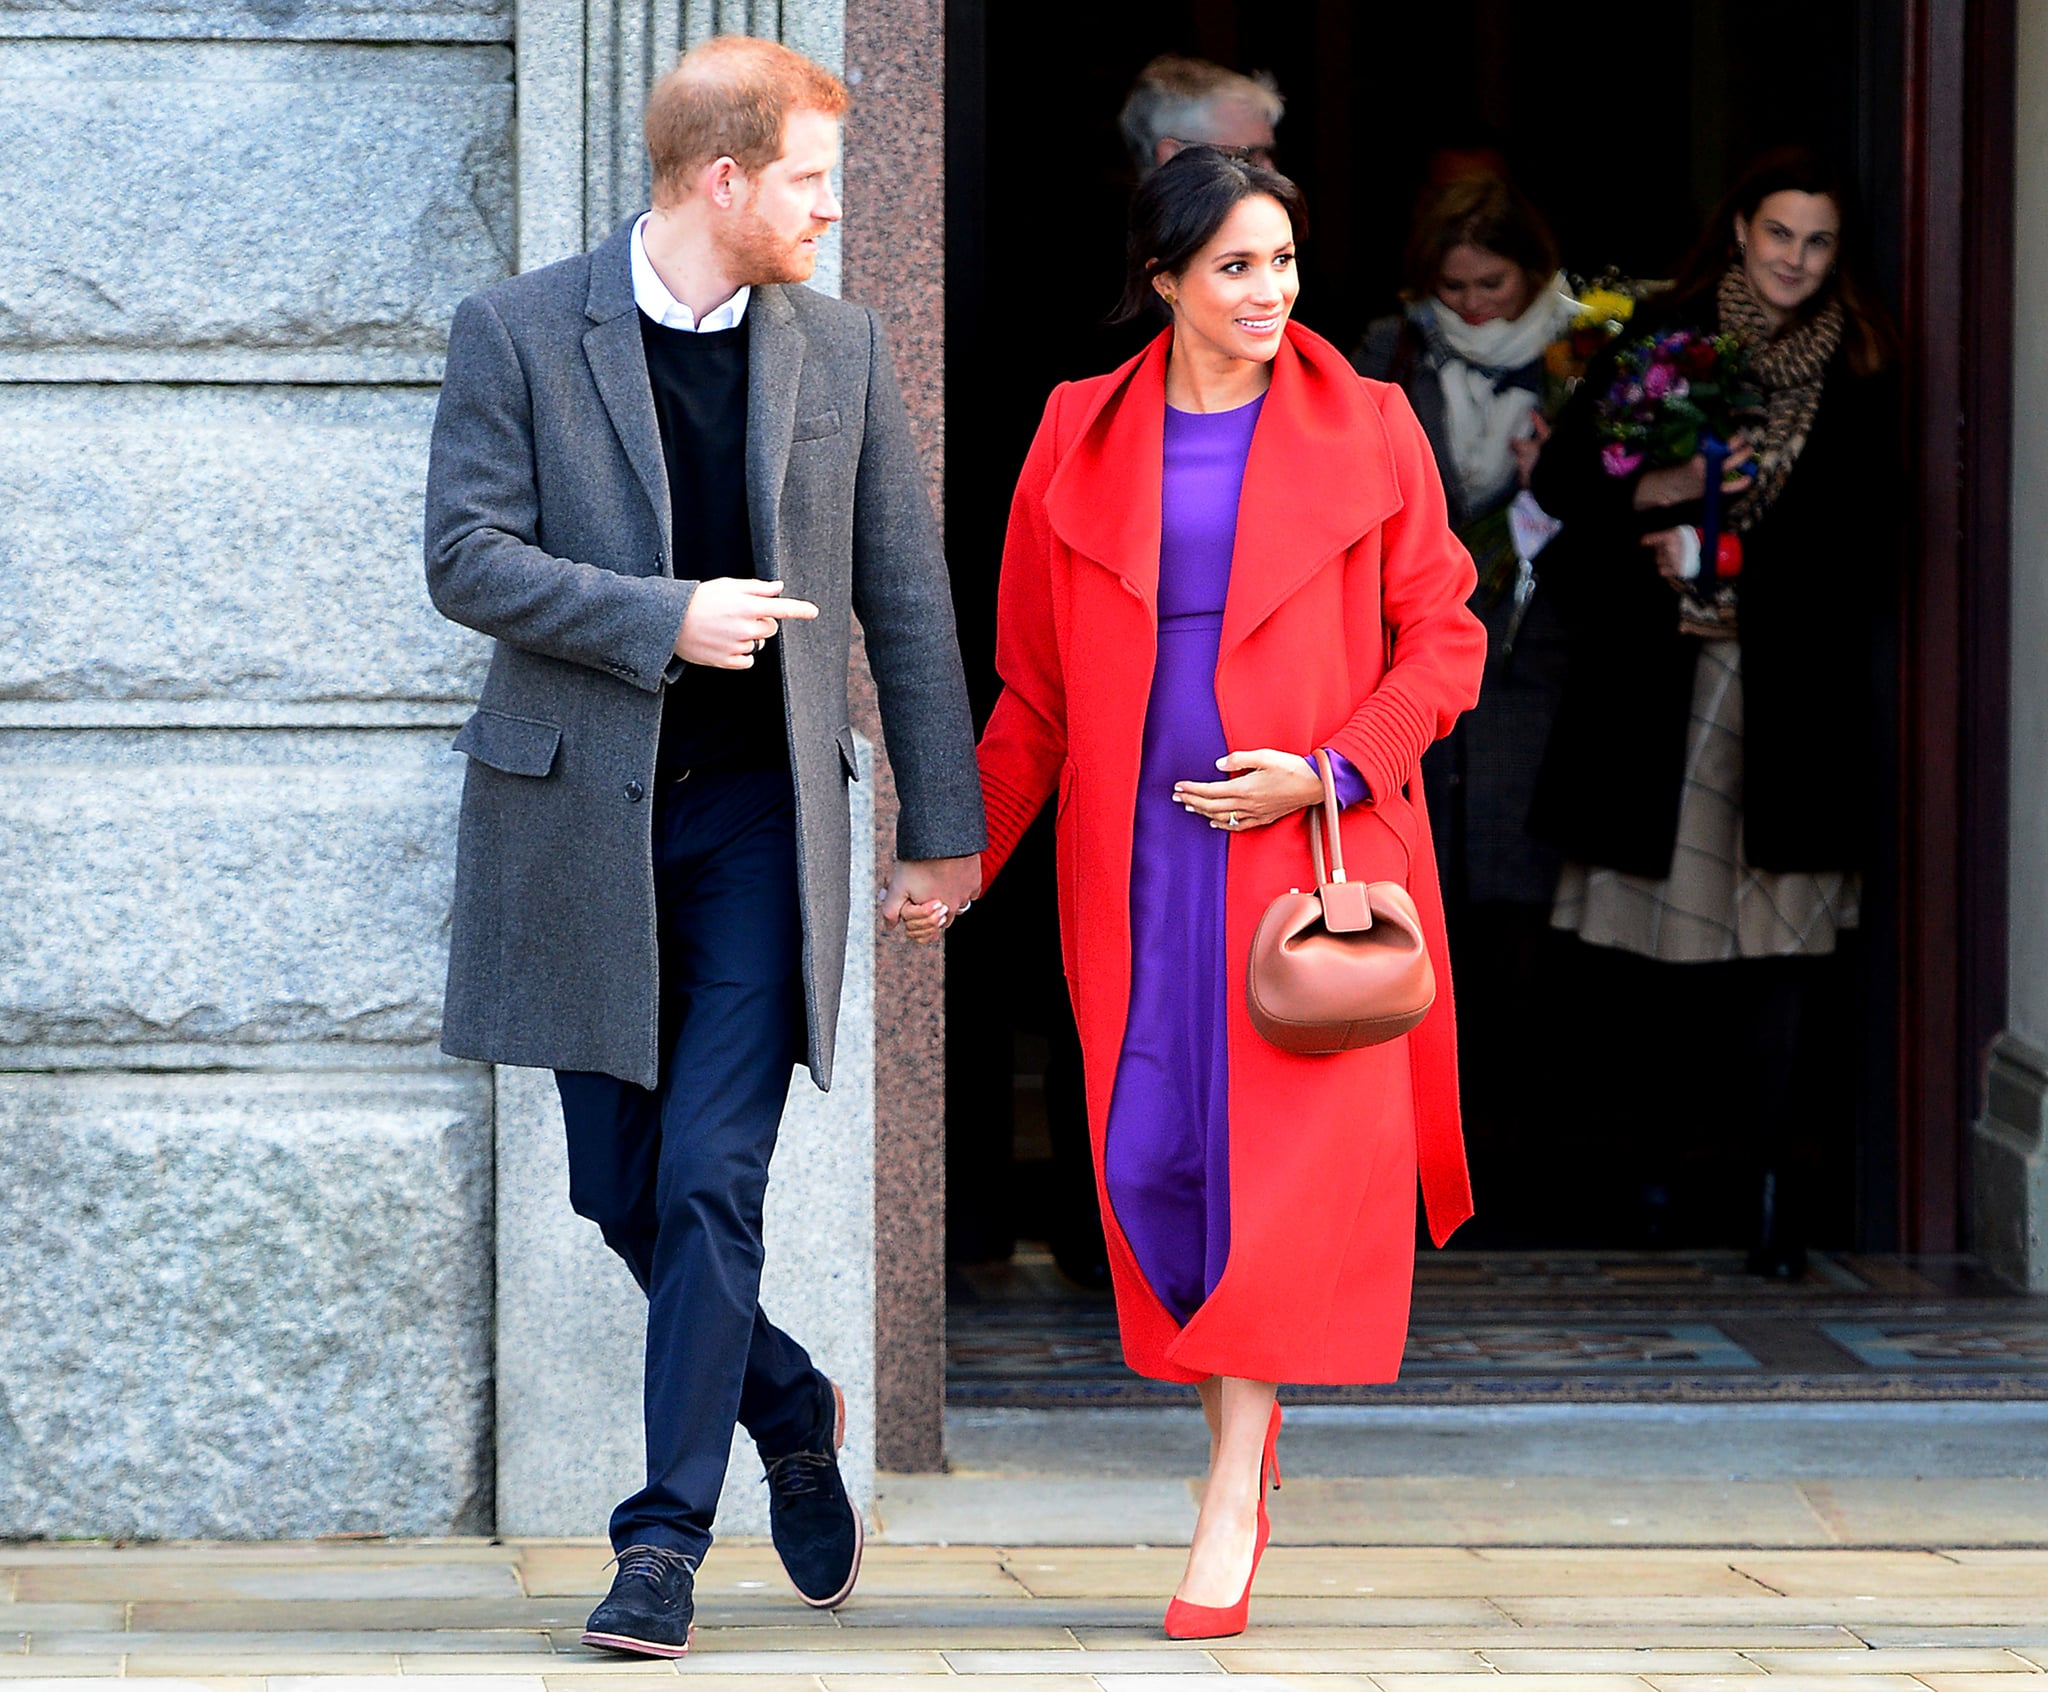 BIRKENHEAD, ENGLAND - JANUARY 14:  The Duke and Duchess Of Sussex depart from Birkenhead Town Hall on January 14, 2019 in Birkenhead, England. (Photo by Richard Martin-Roberts/Getty Images)